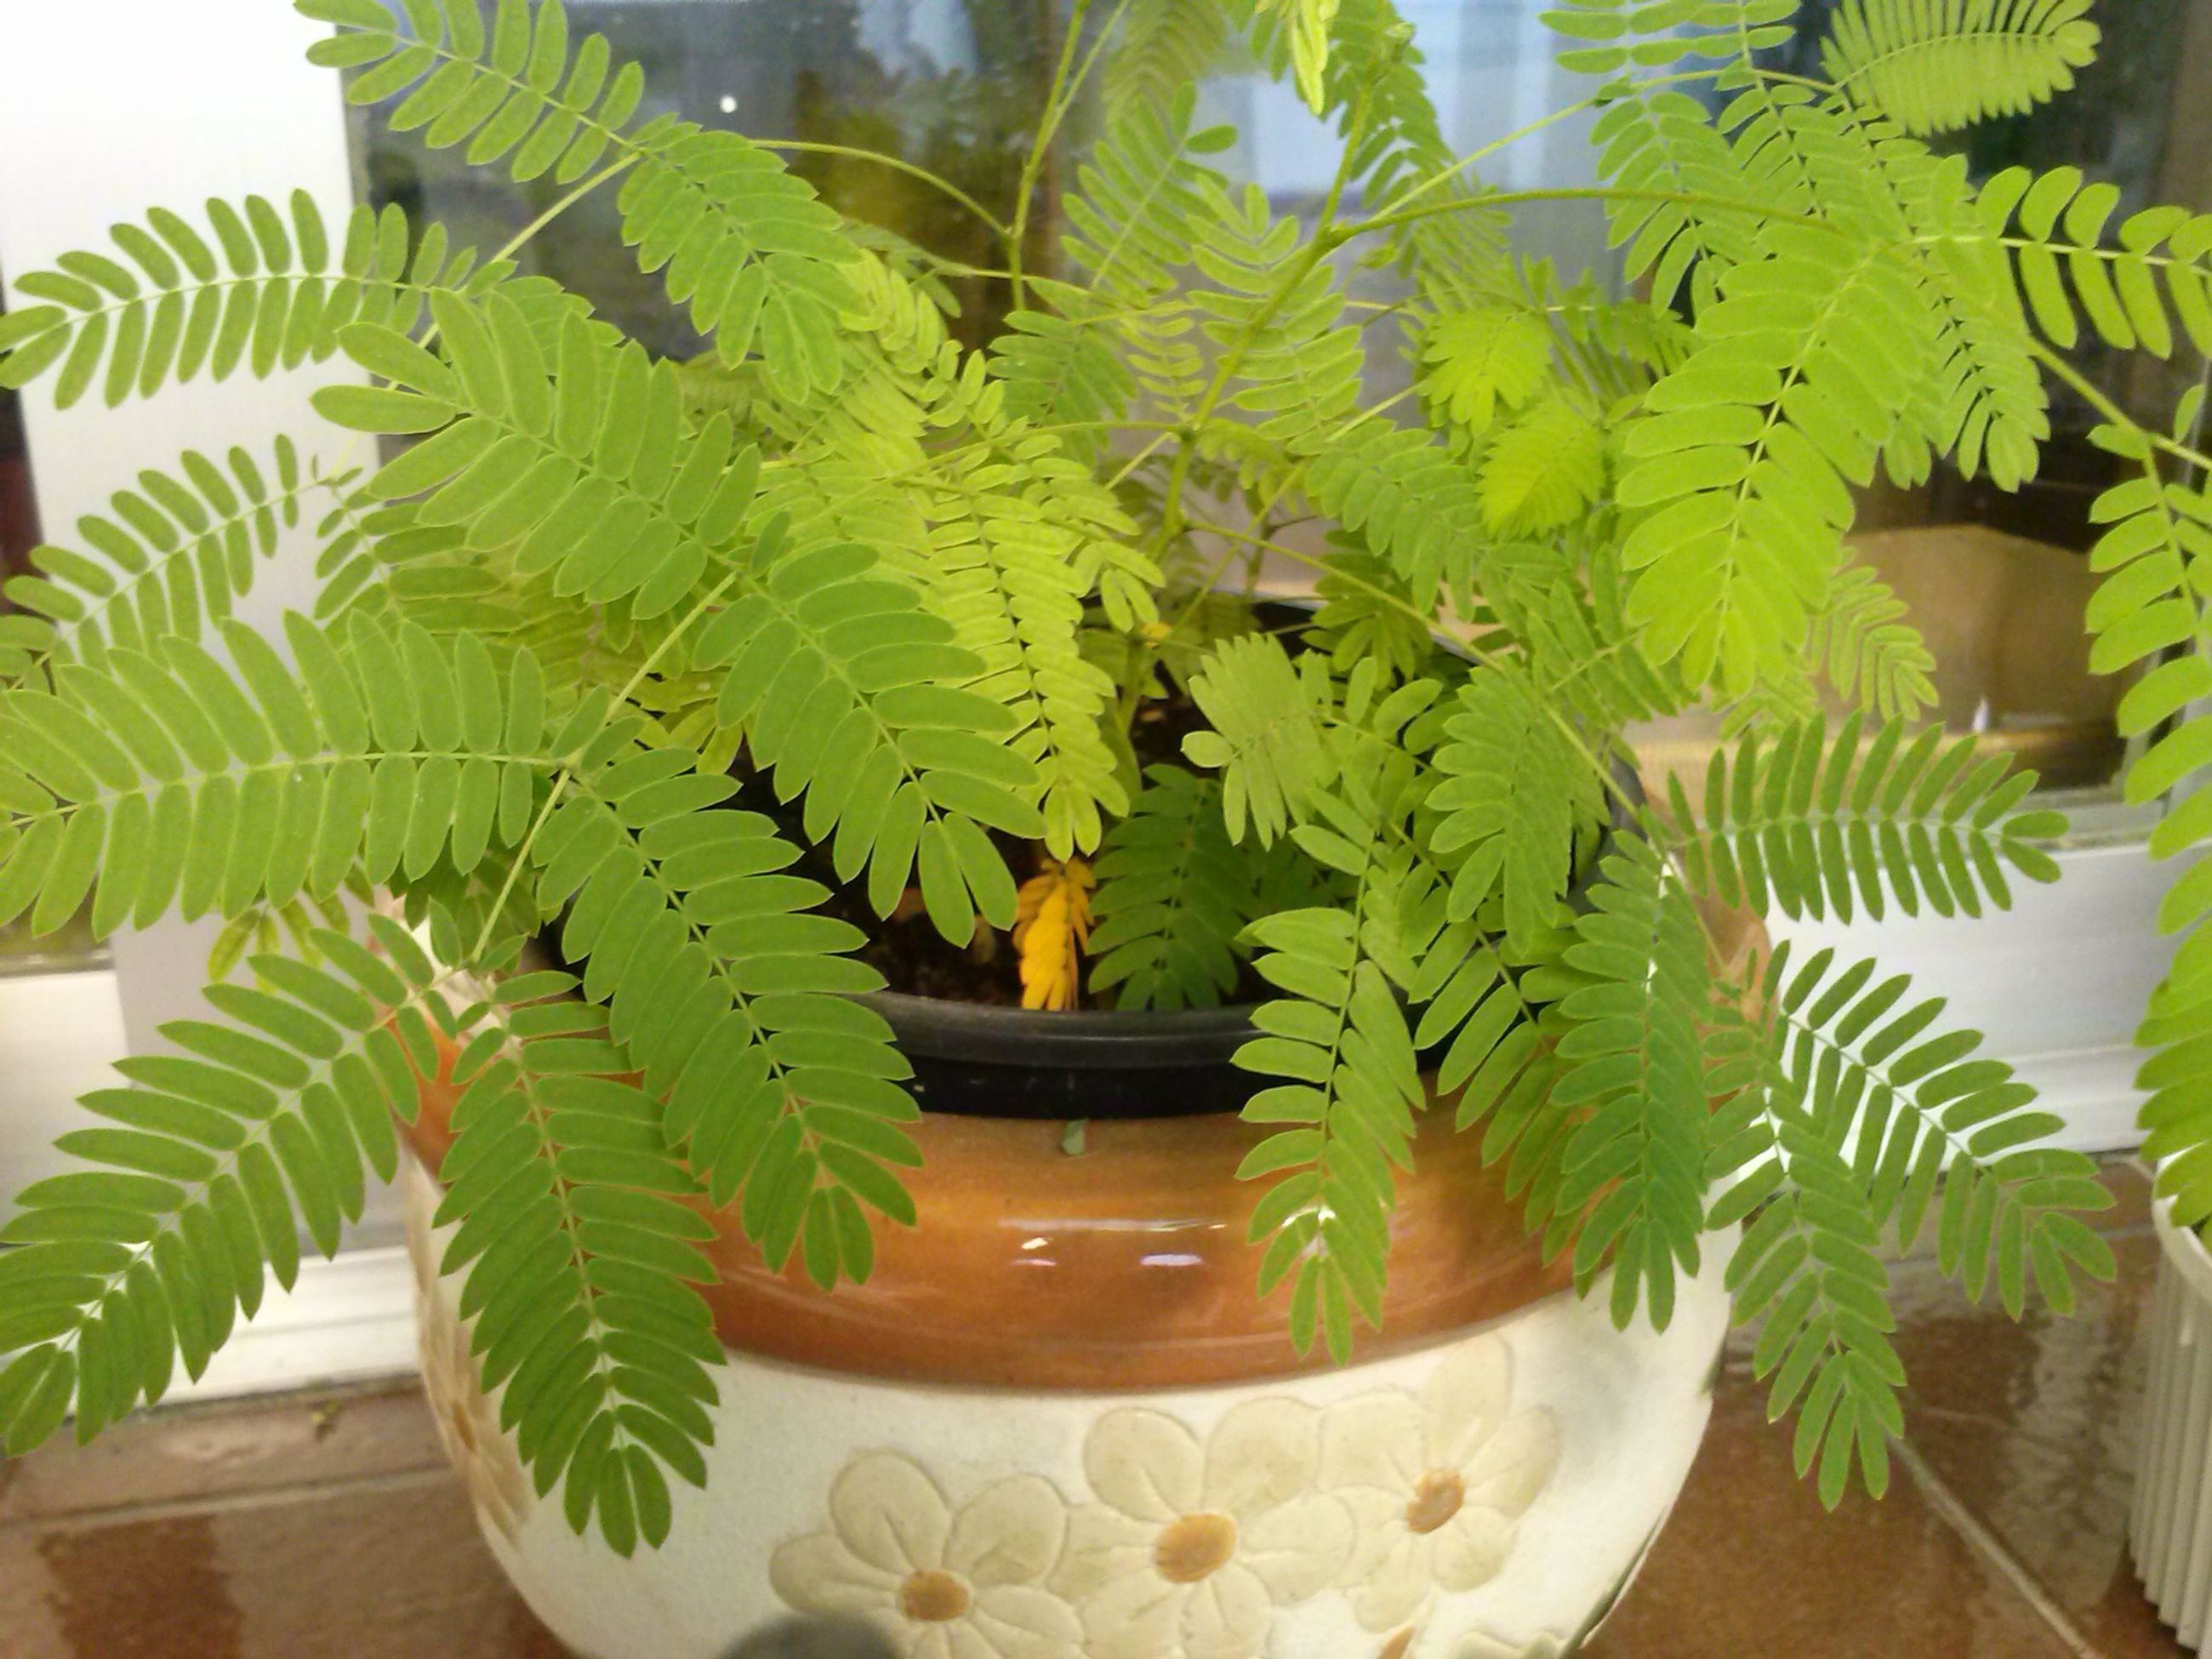 leaf, green color, growth, indoors, potted plant, plant, palm tree, tree, nature, low angle view, table, no people, close-up, day, sunlight, branch, built structure, freshness, beauty in nature, leaves